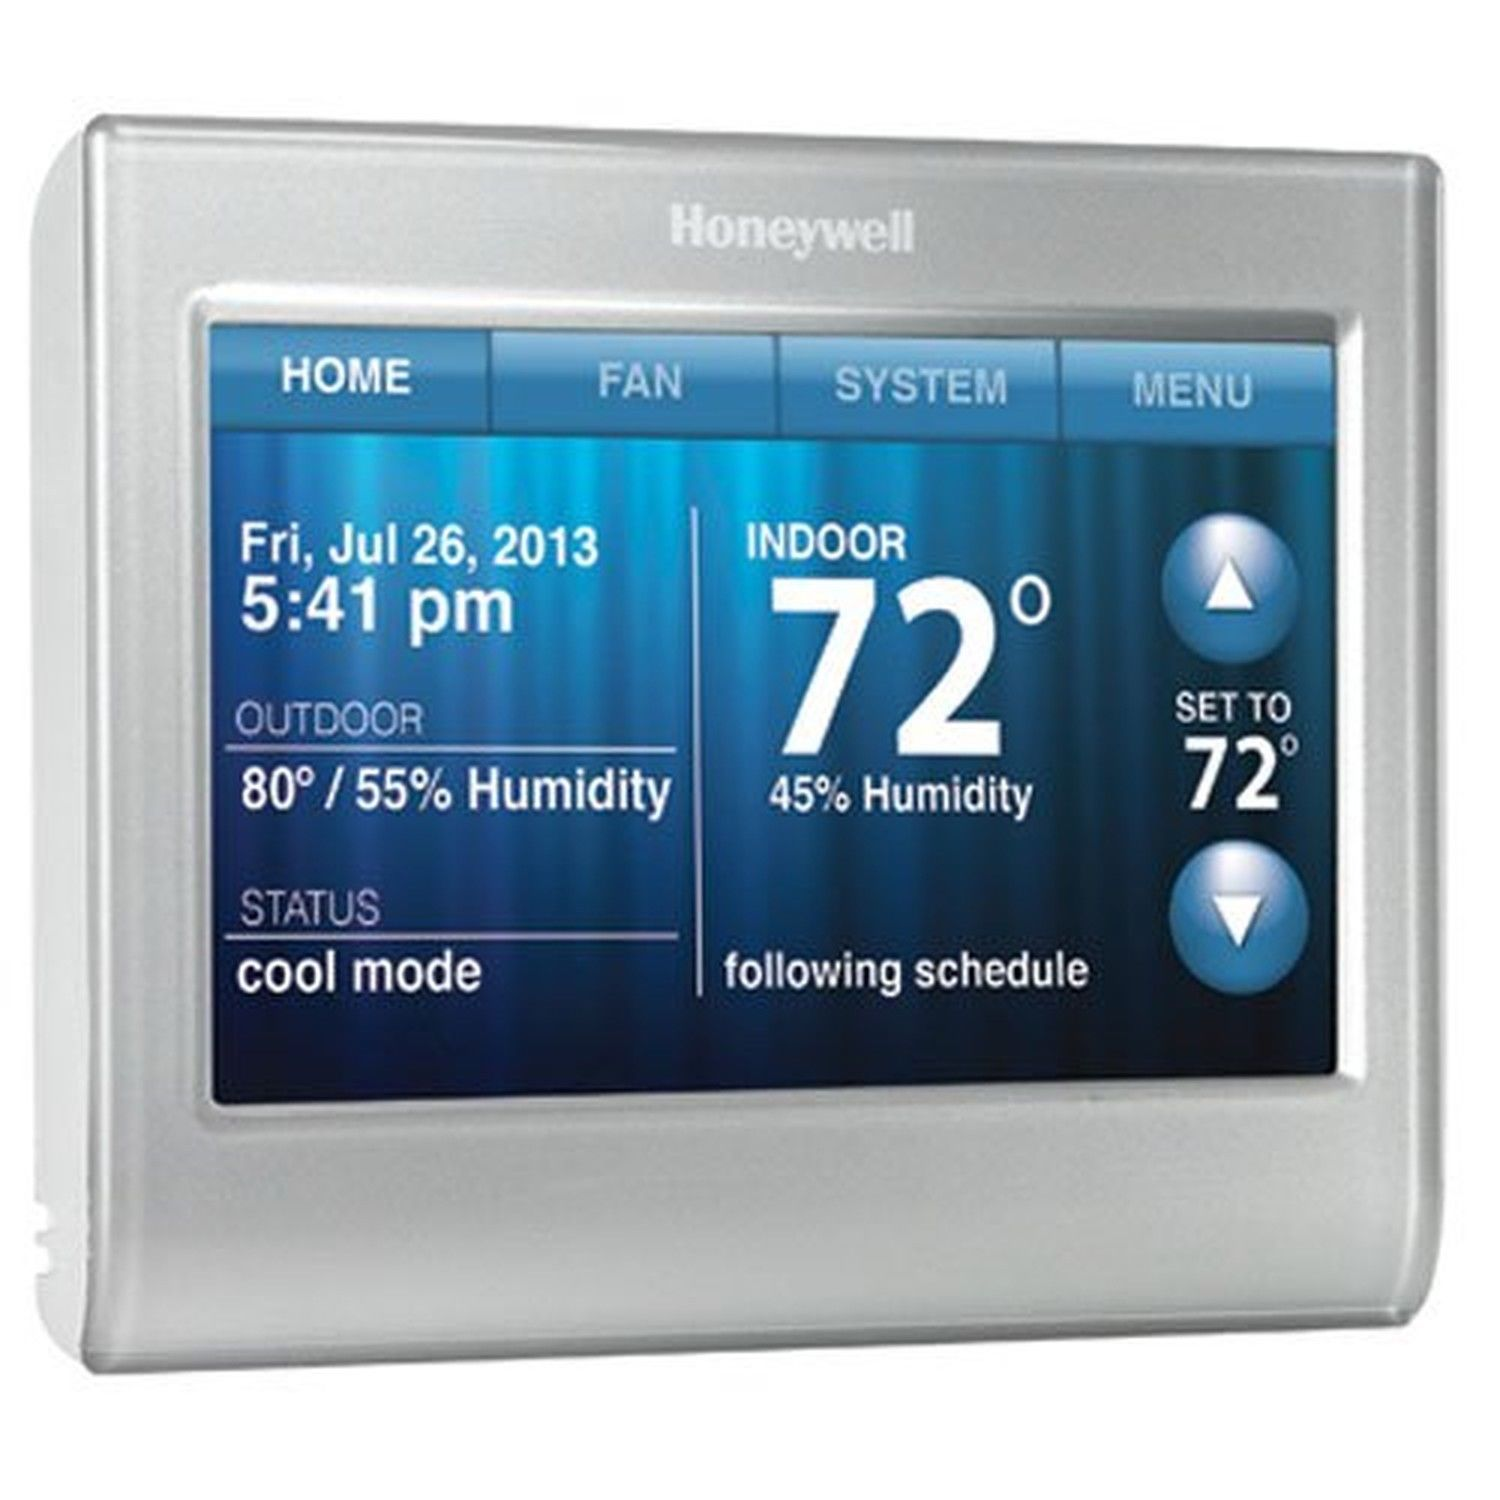 Honeywell Smart Thermostat Wi-Fi Touchscreen Works with Amazon Alexa